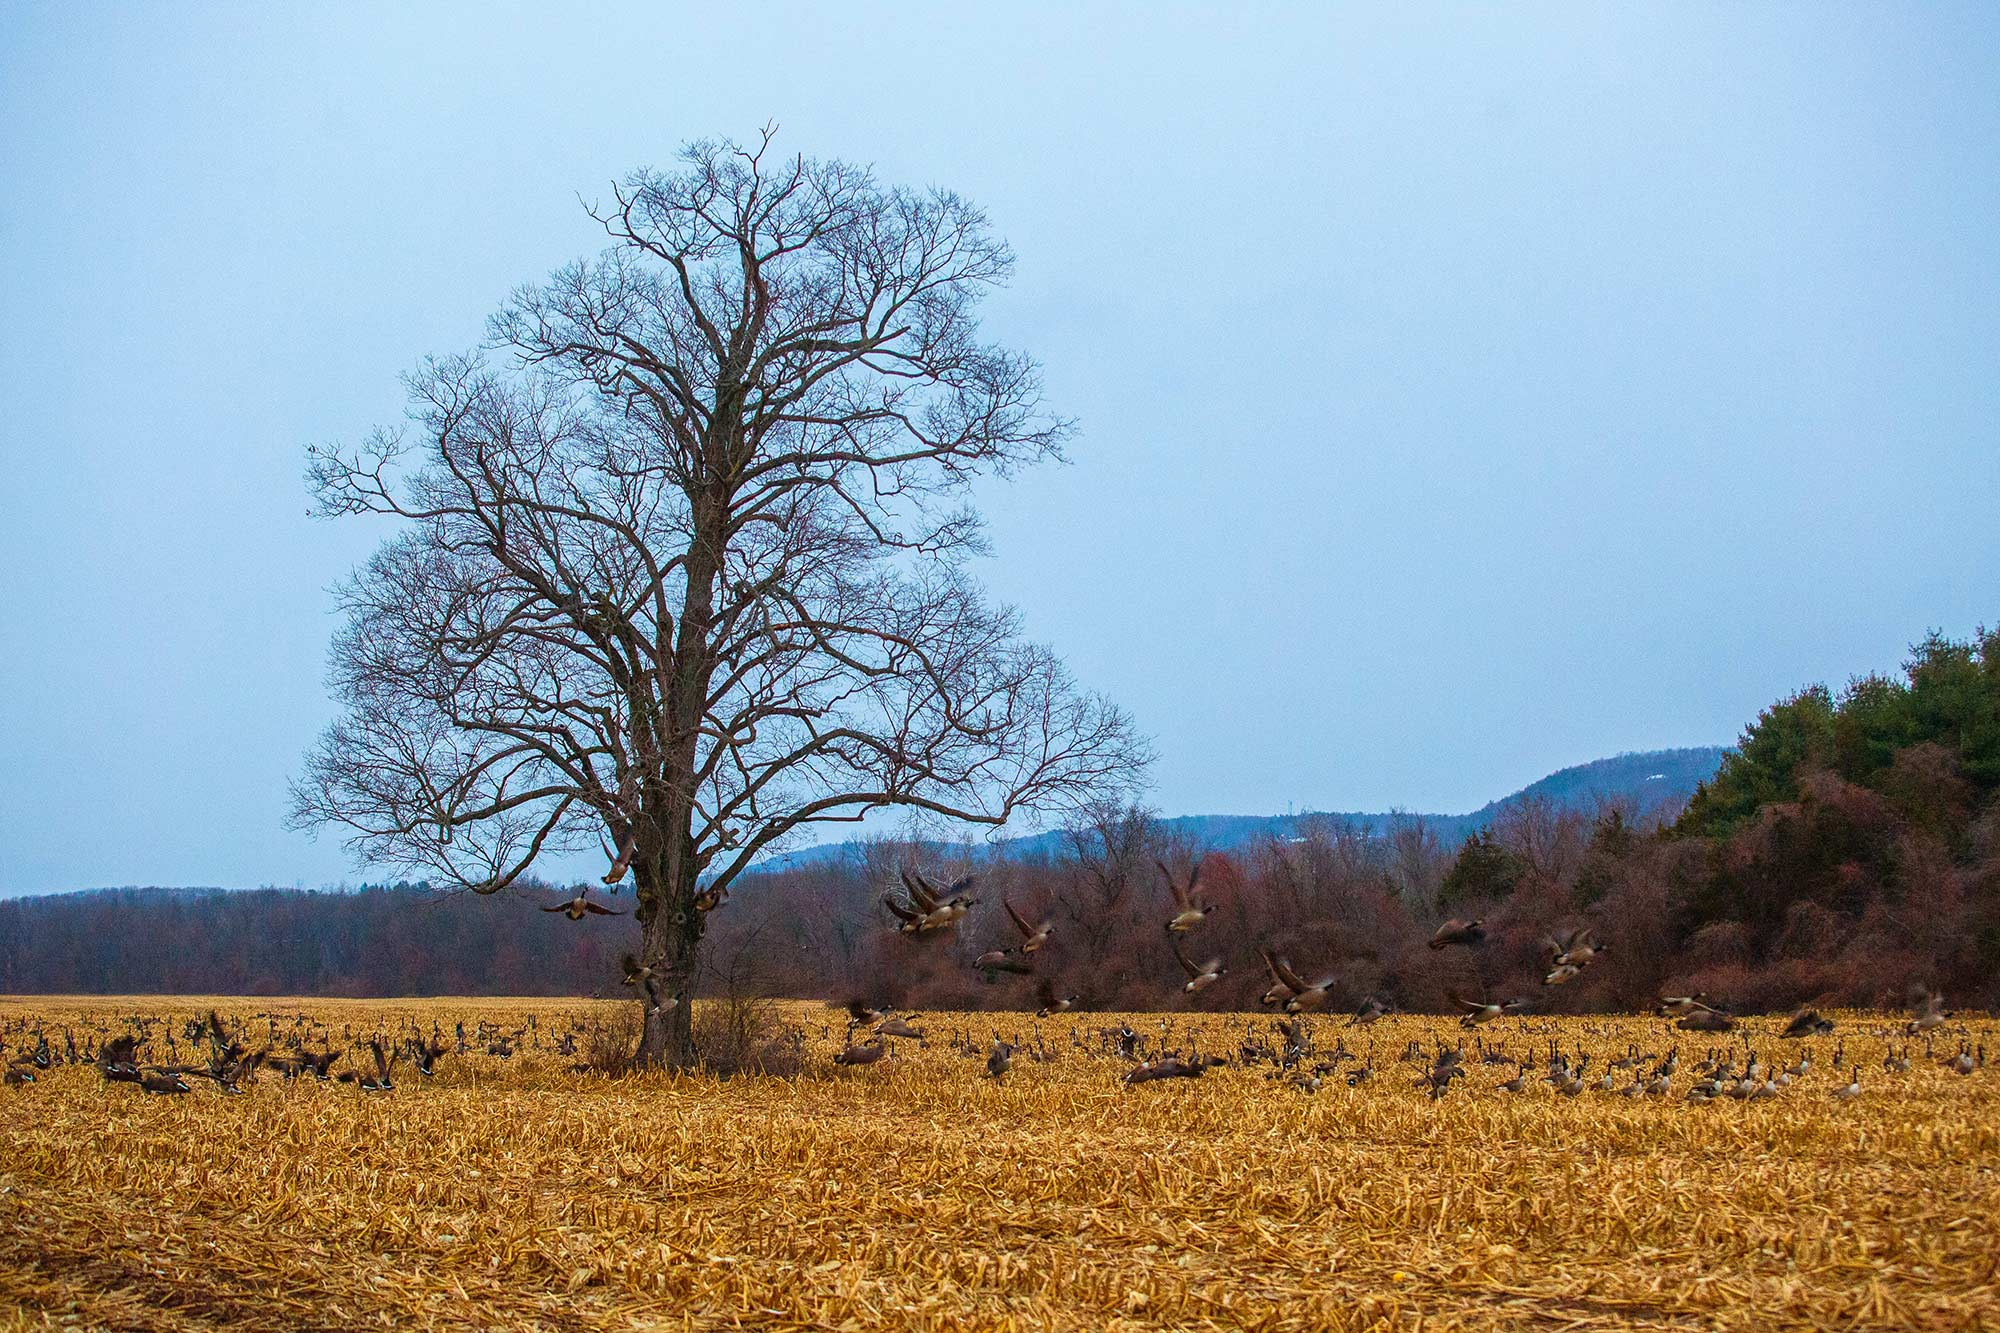 Simmons Farm Field, Avon, CT, 12/11/14